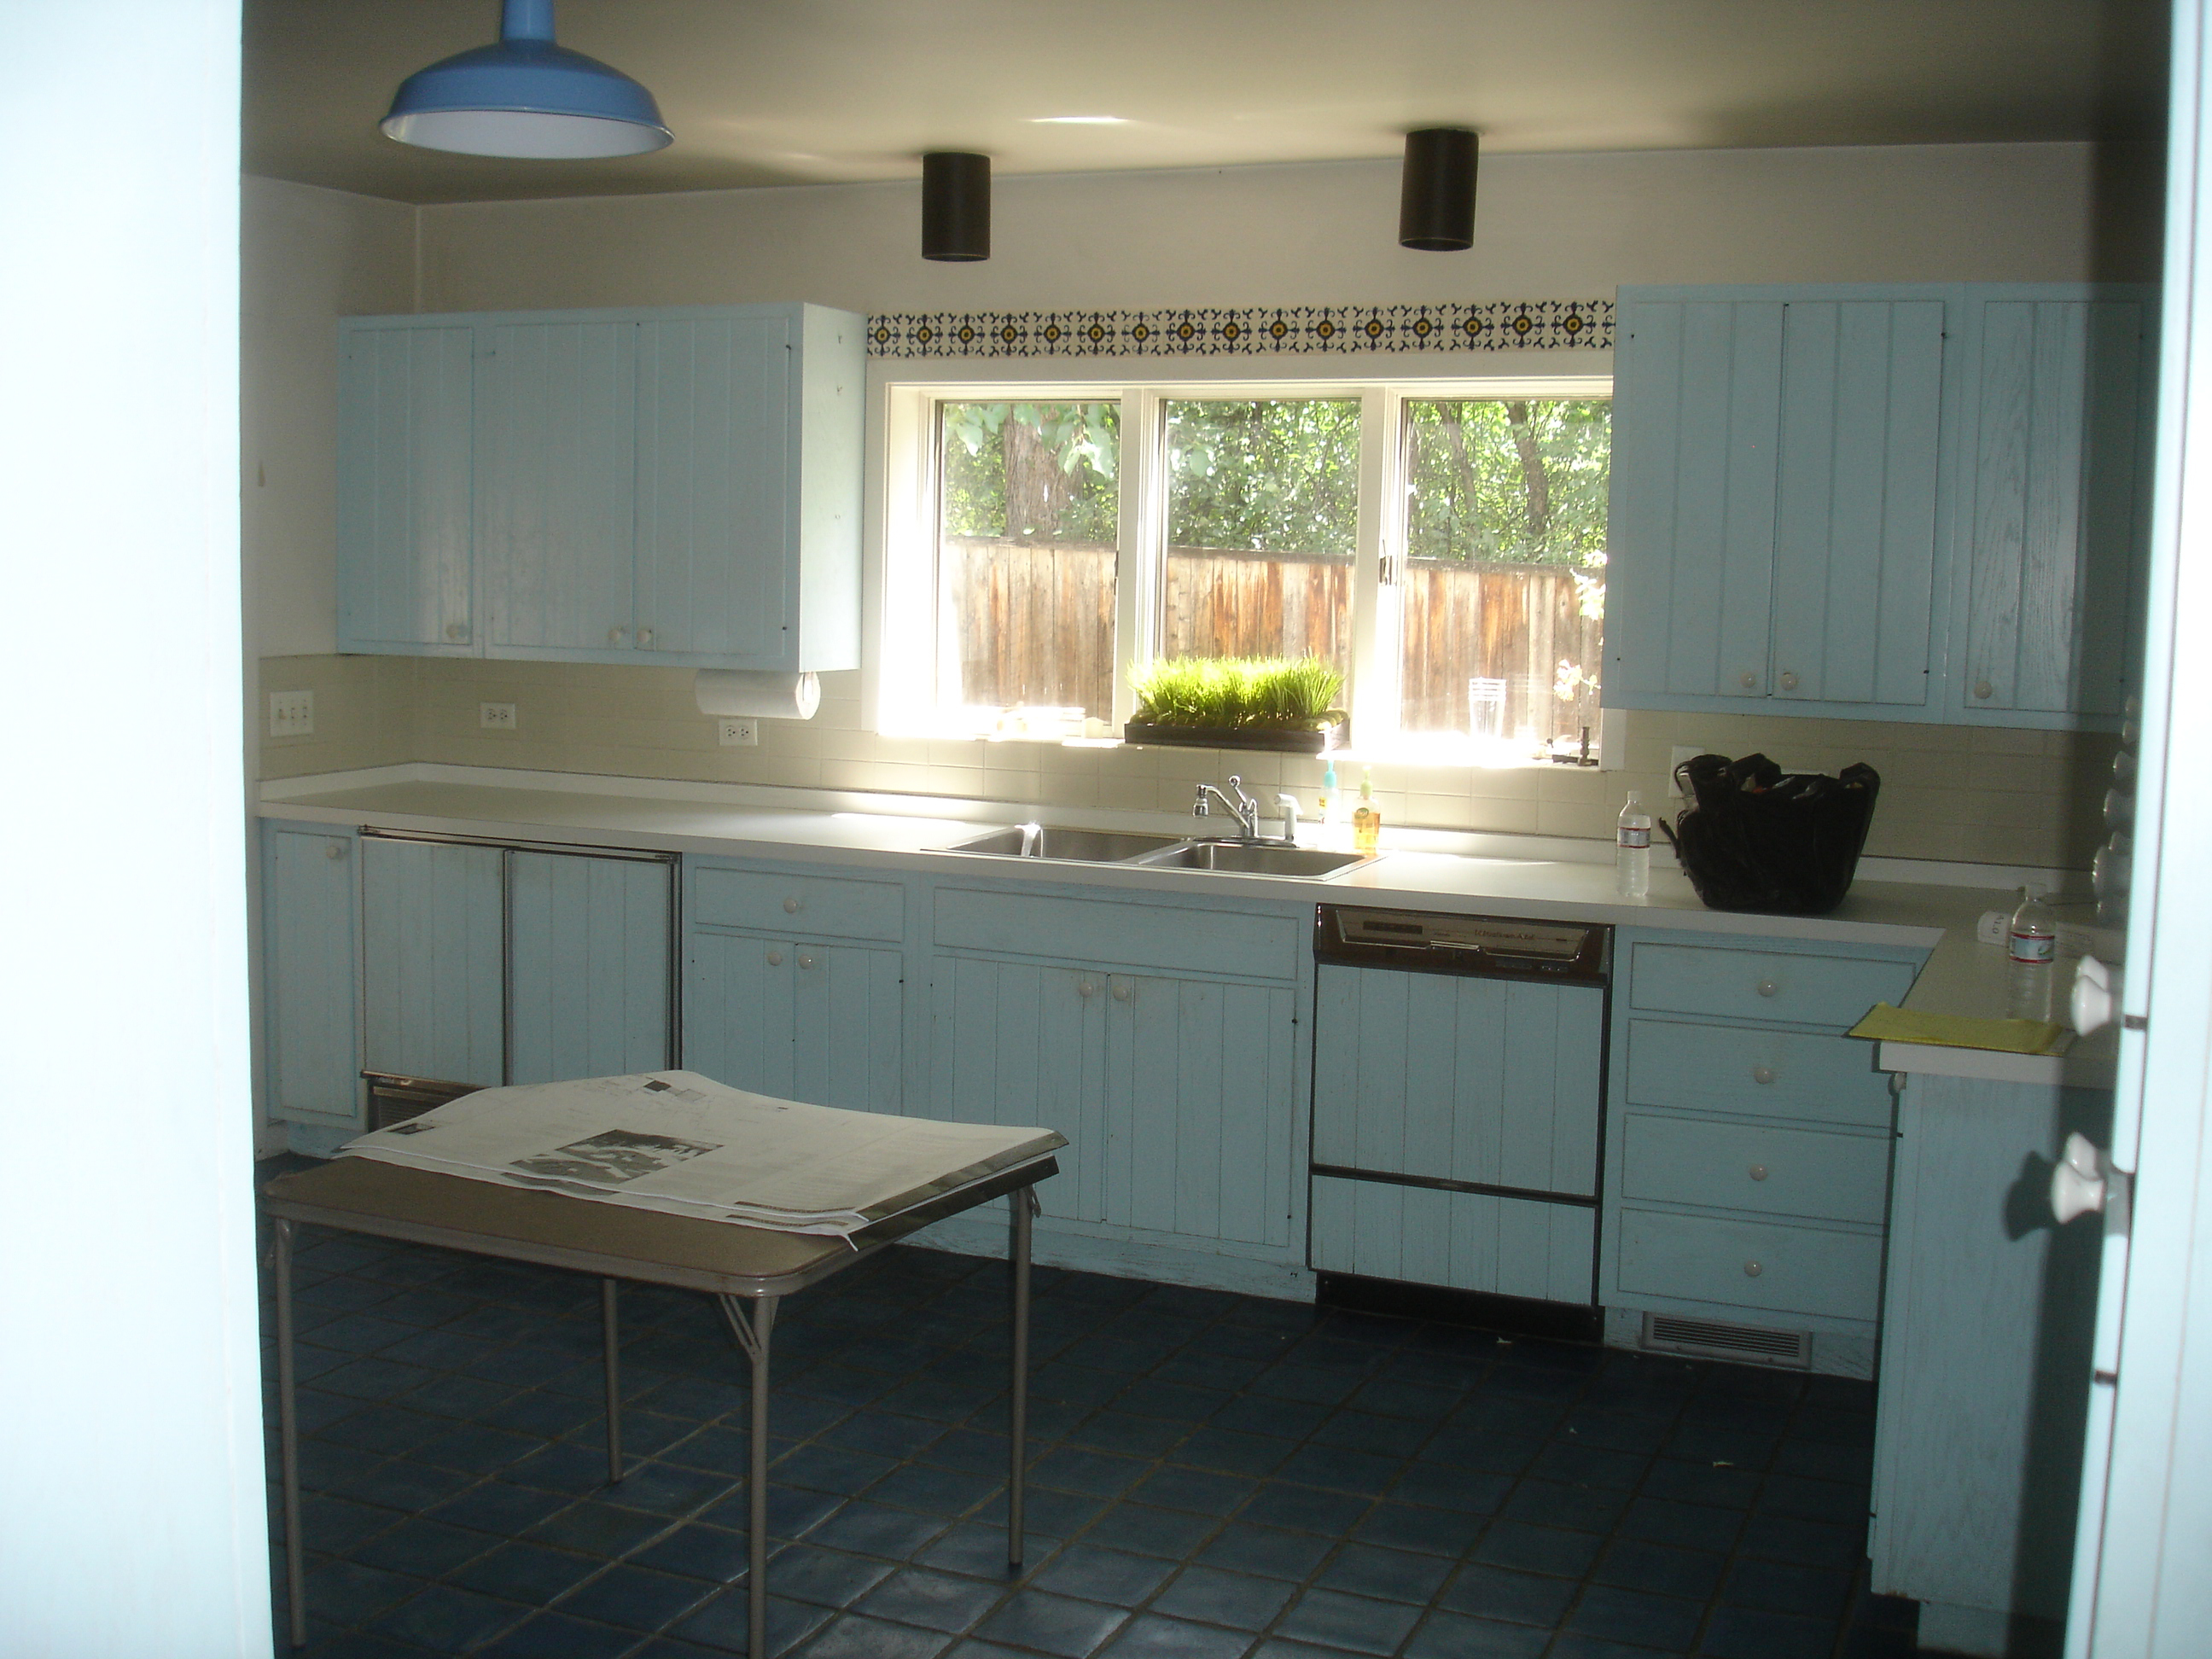 Recessed Lighting Placement Kitchen Recessed Lighting Best Practices Pro Remodeler